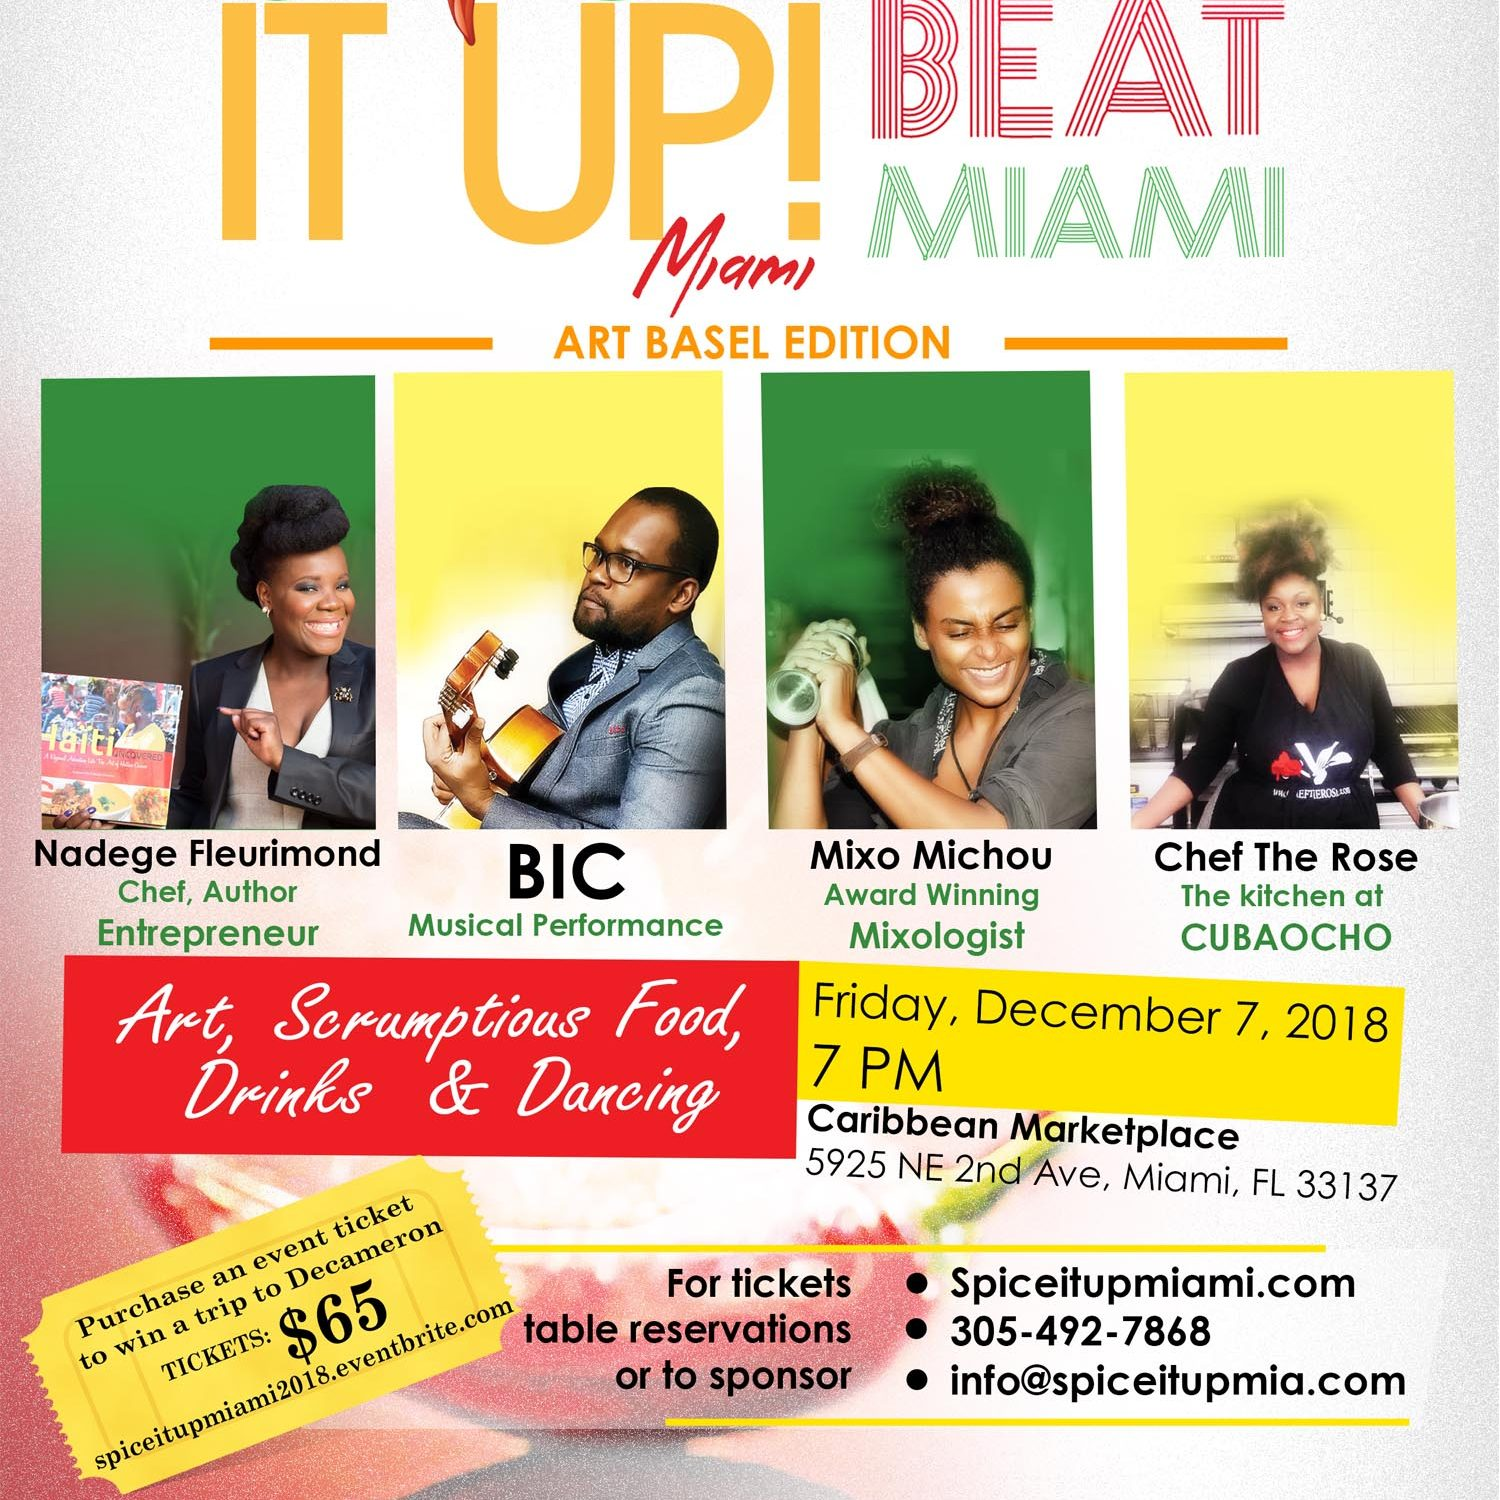 abm-spice-it-up-miami_ver6-1